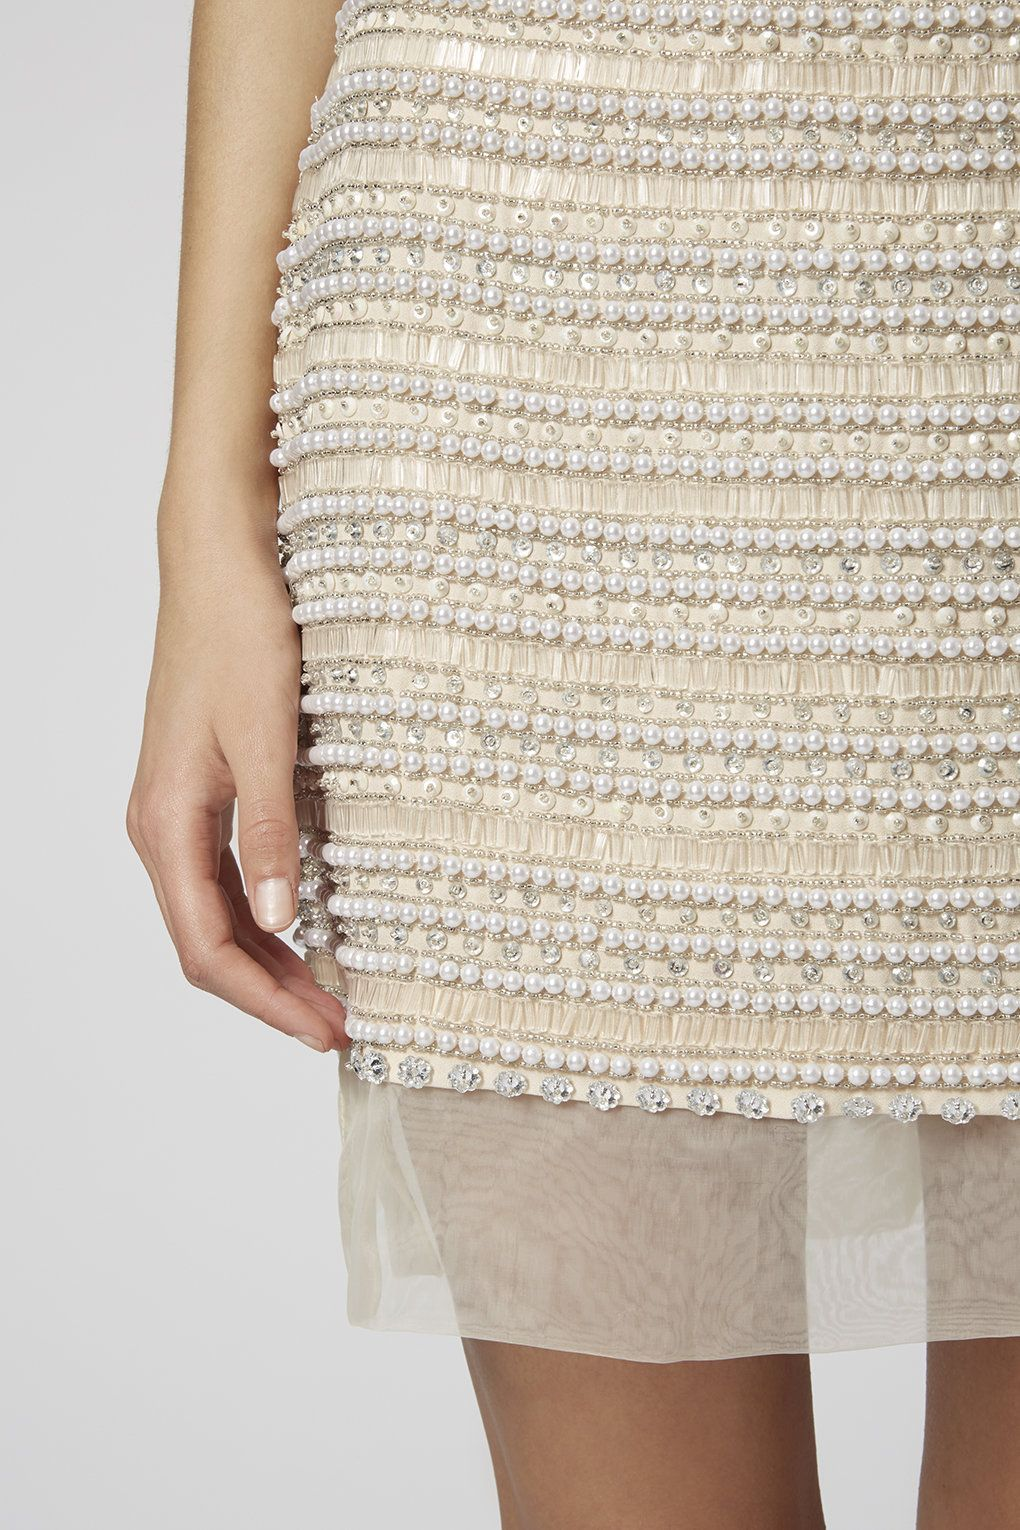 Limited Edition Diamante Pearl Skirt